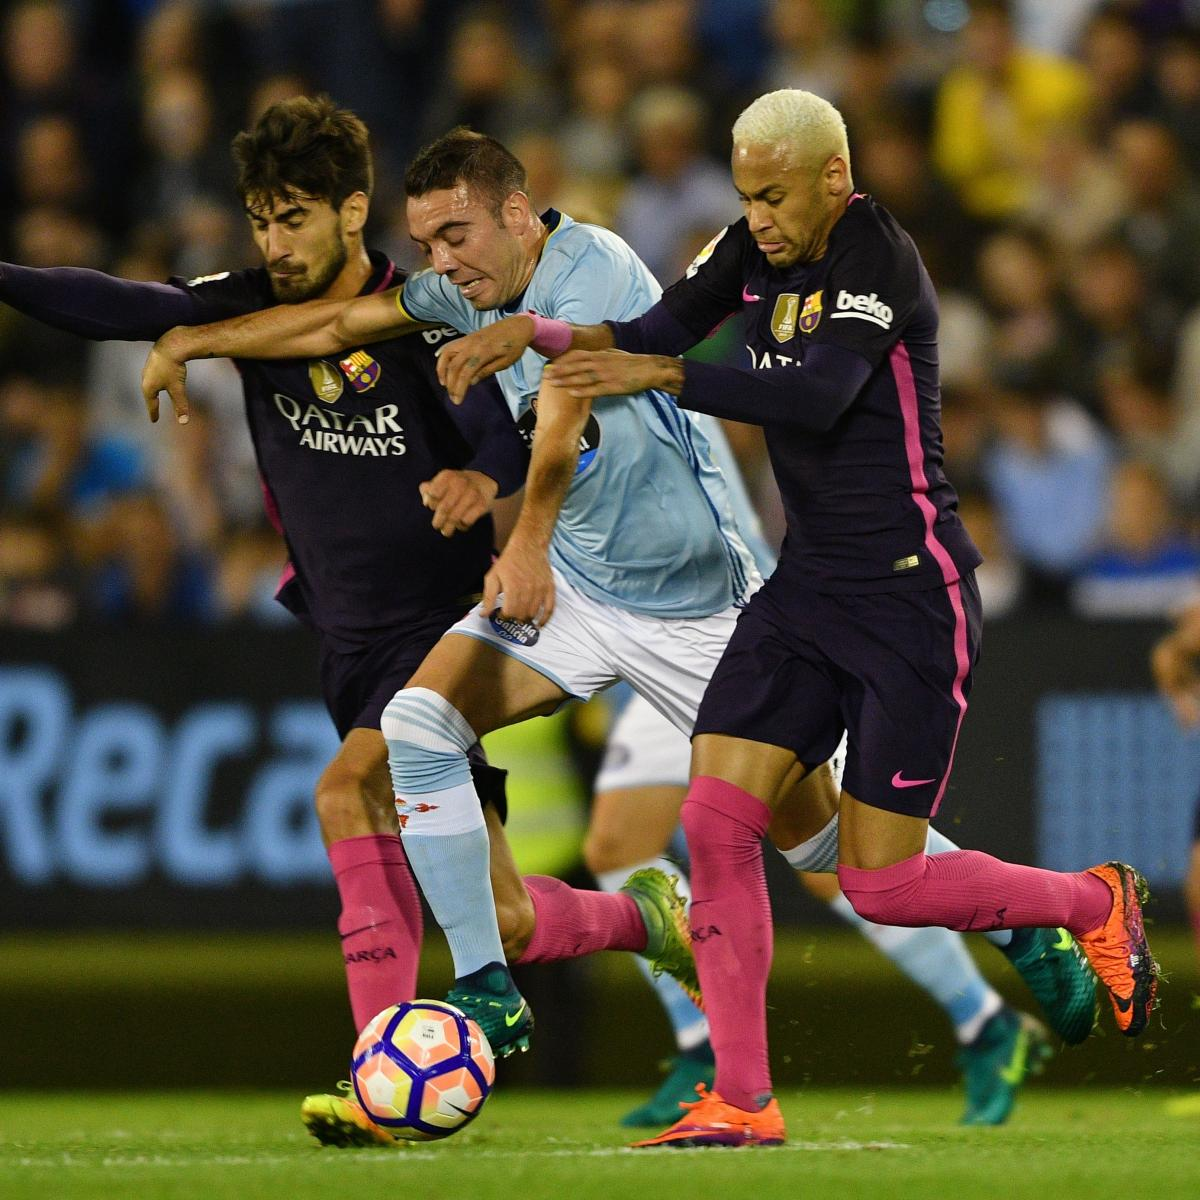 Celta Vigo Vs Barcelona Direct: Celta Vigo Vs. Barcelona: Score And Reaction From 2016 La